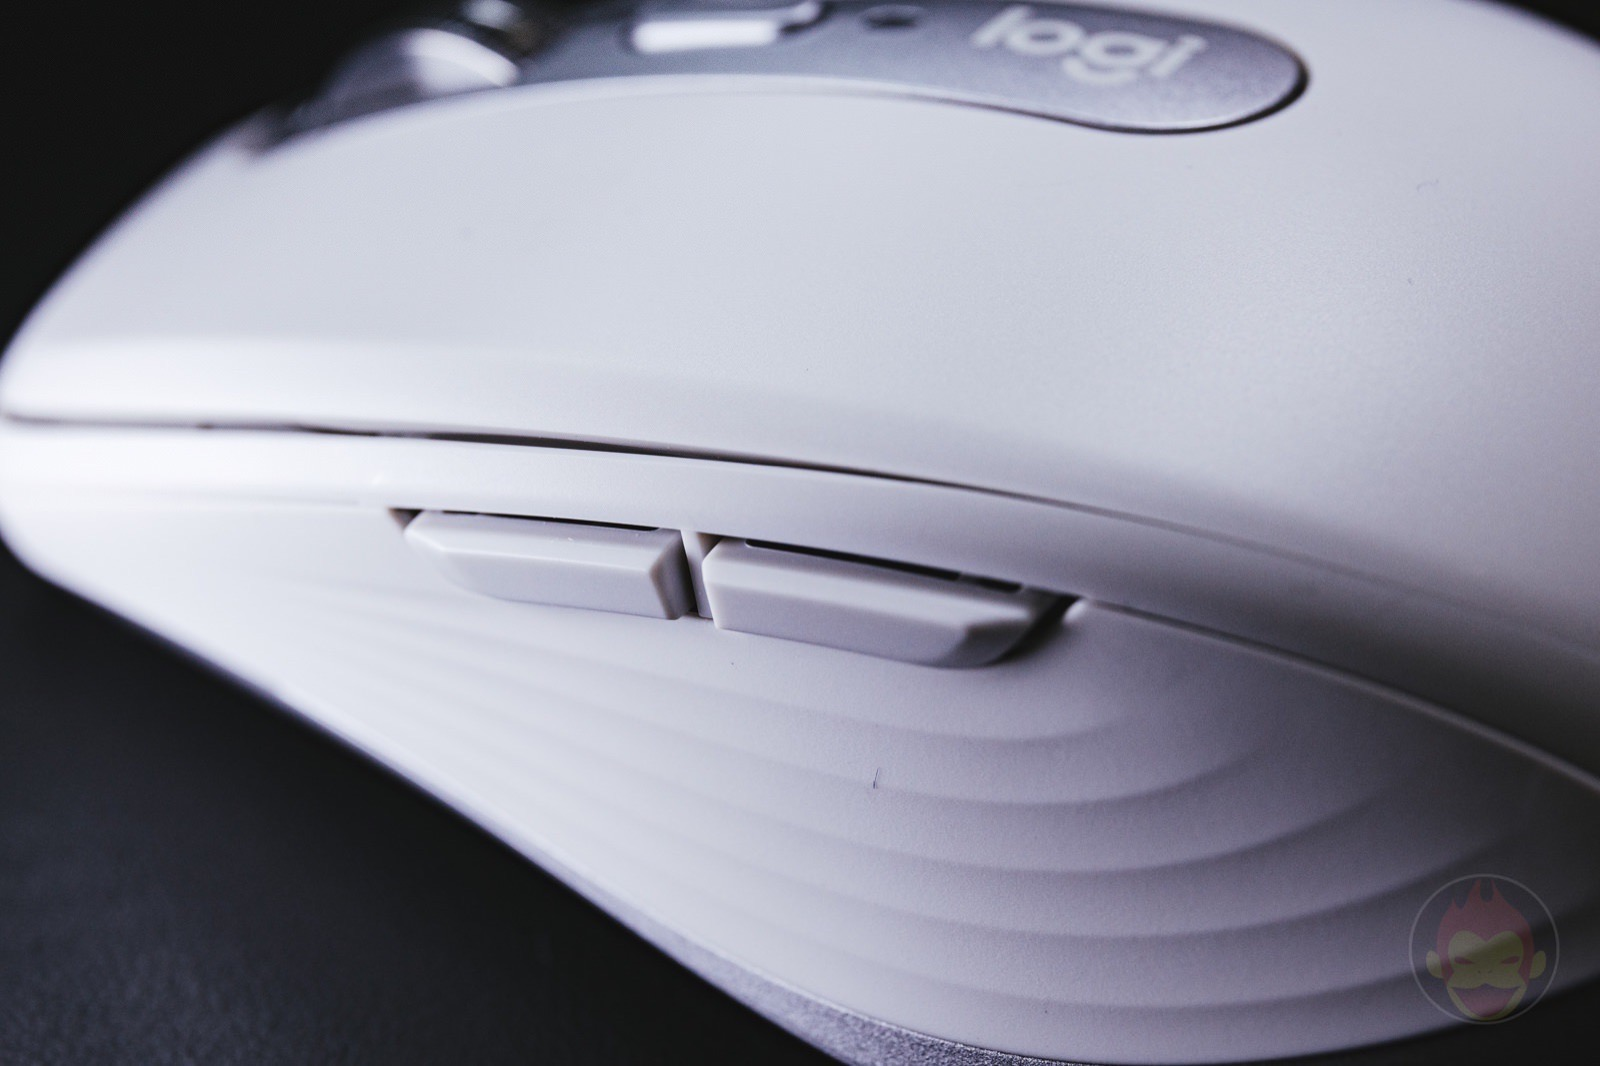 Logicool MX Anywhere 3 Mouse Review 03